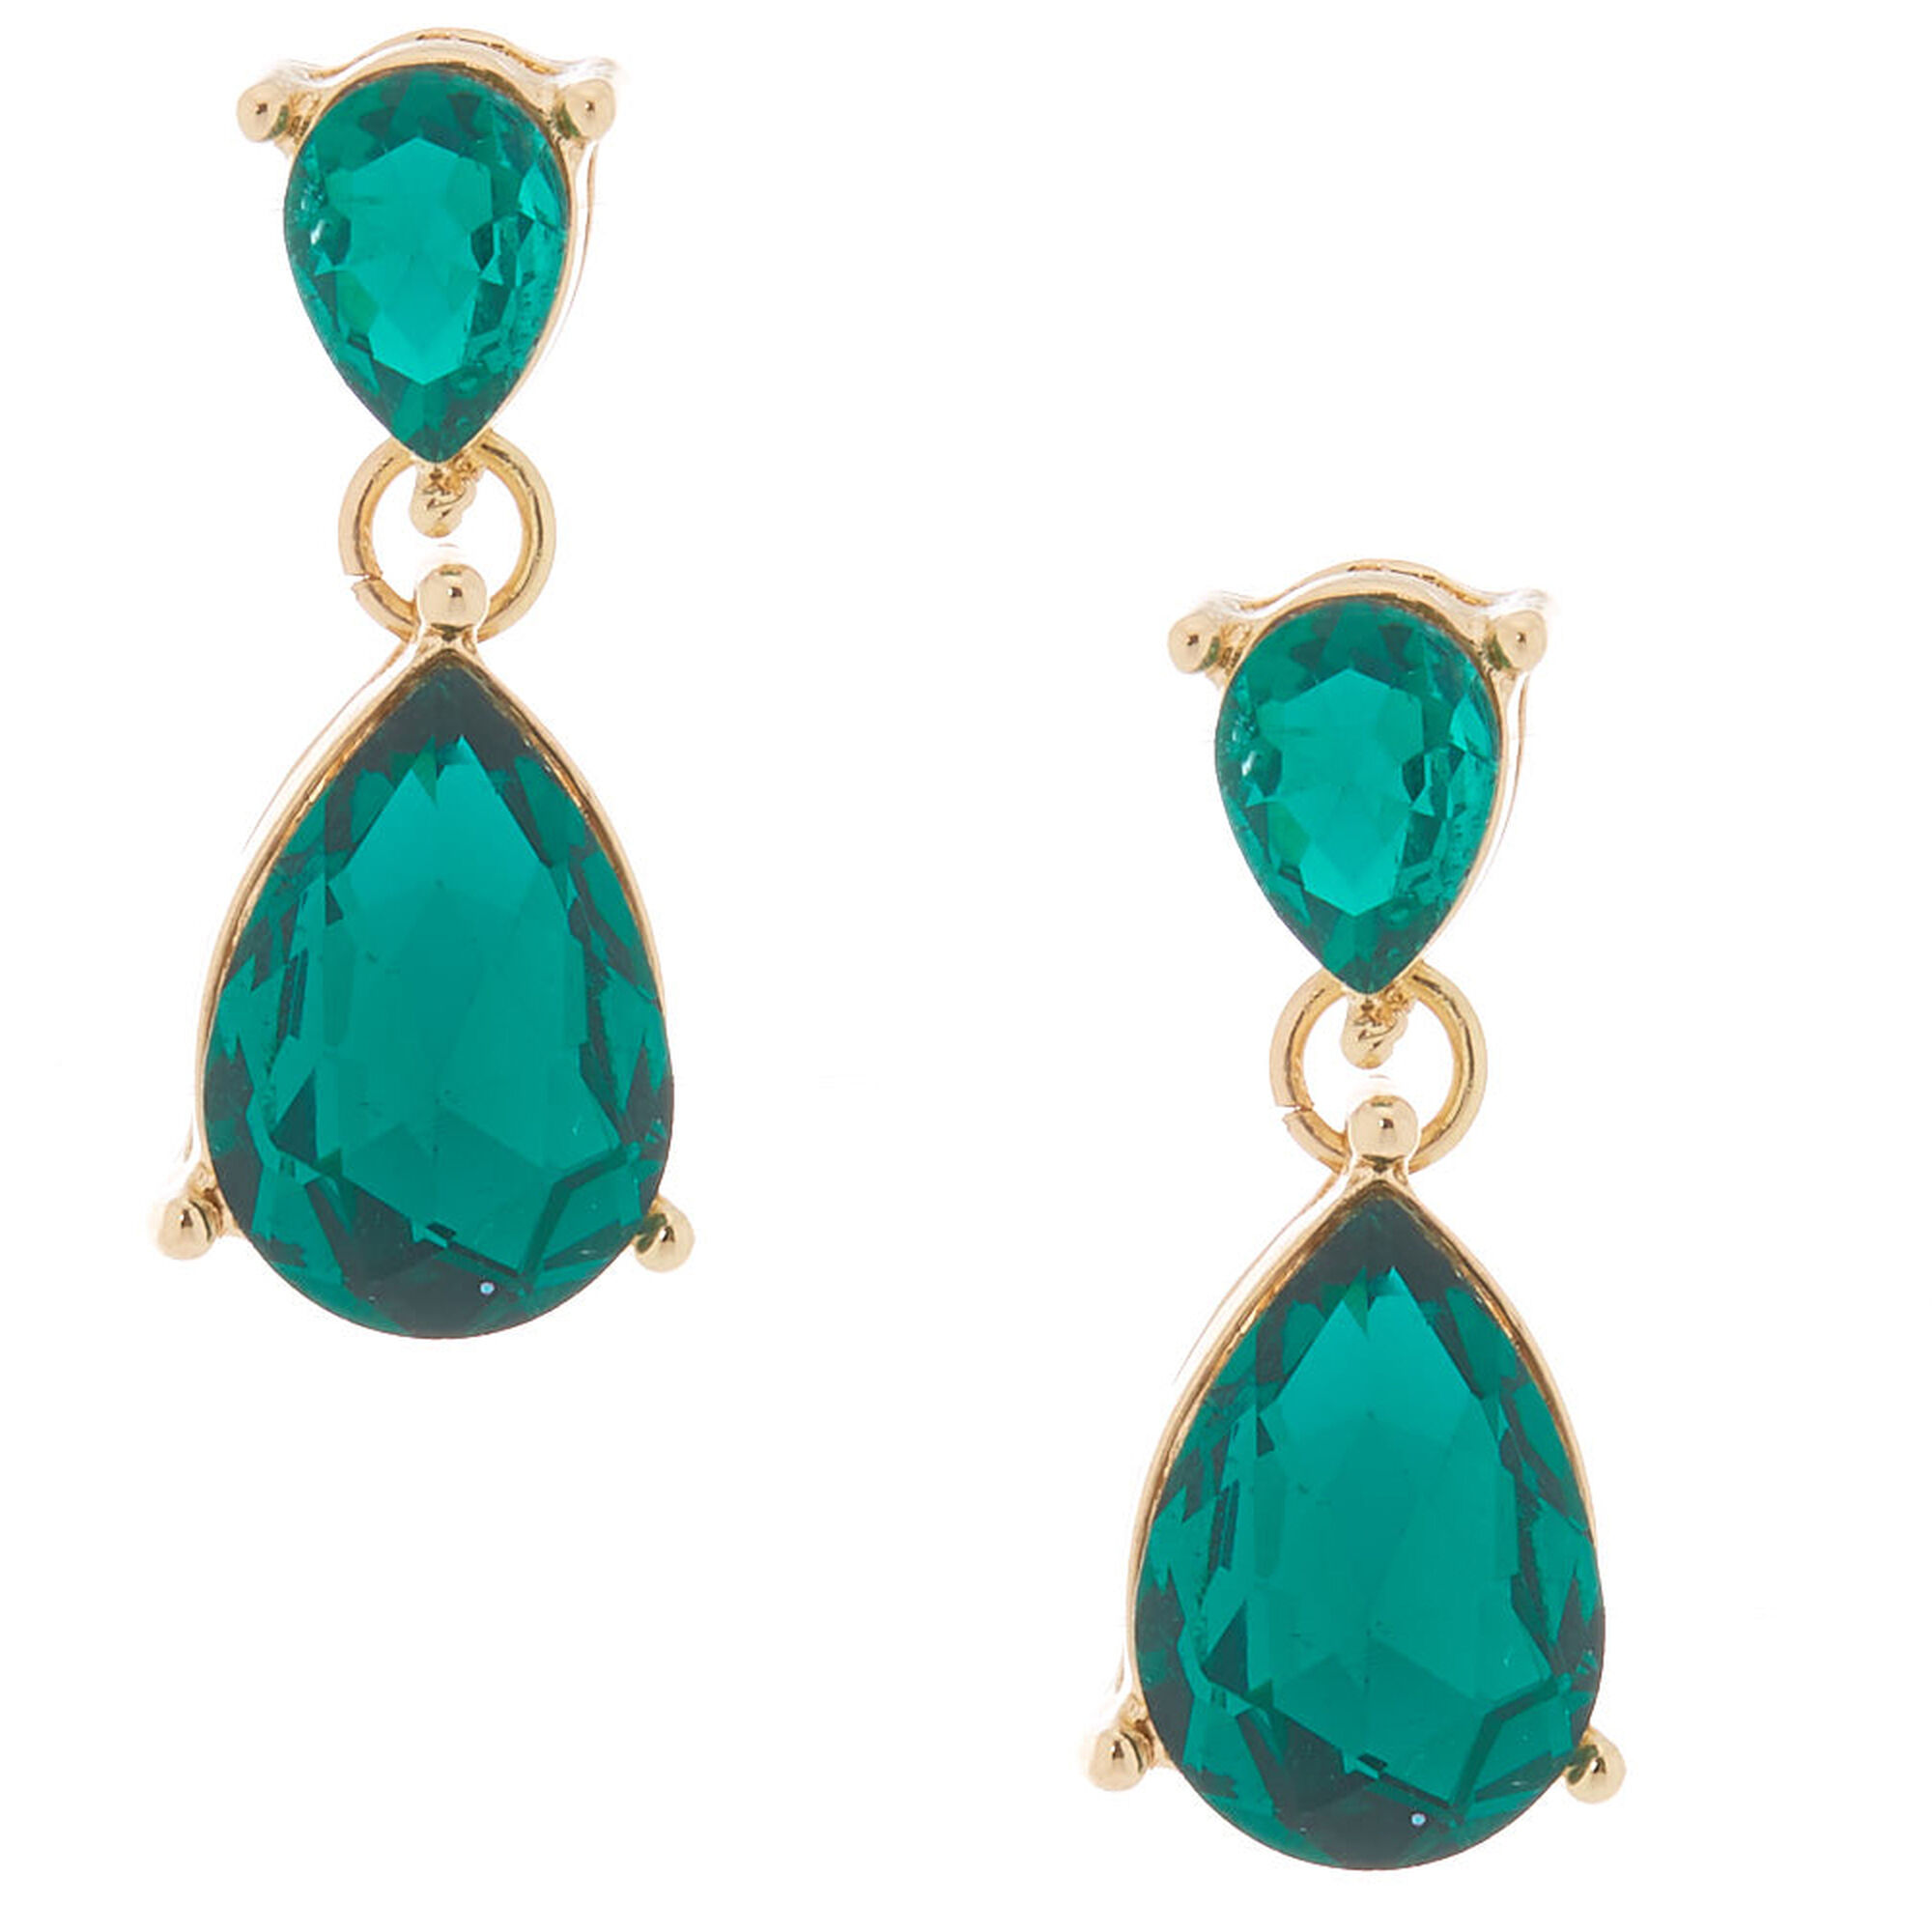 jewelry of the jewellery gardens dainty products sun earrings emerald